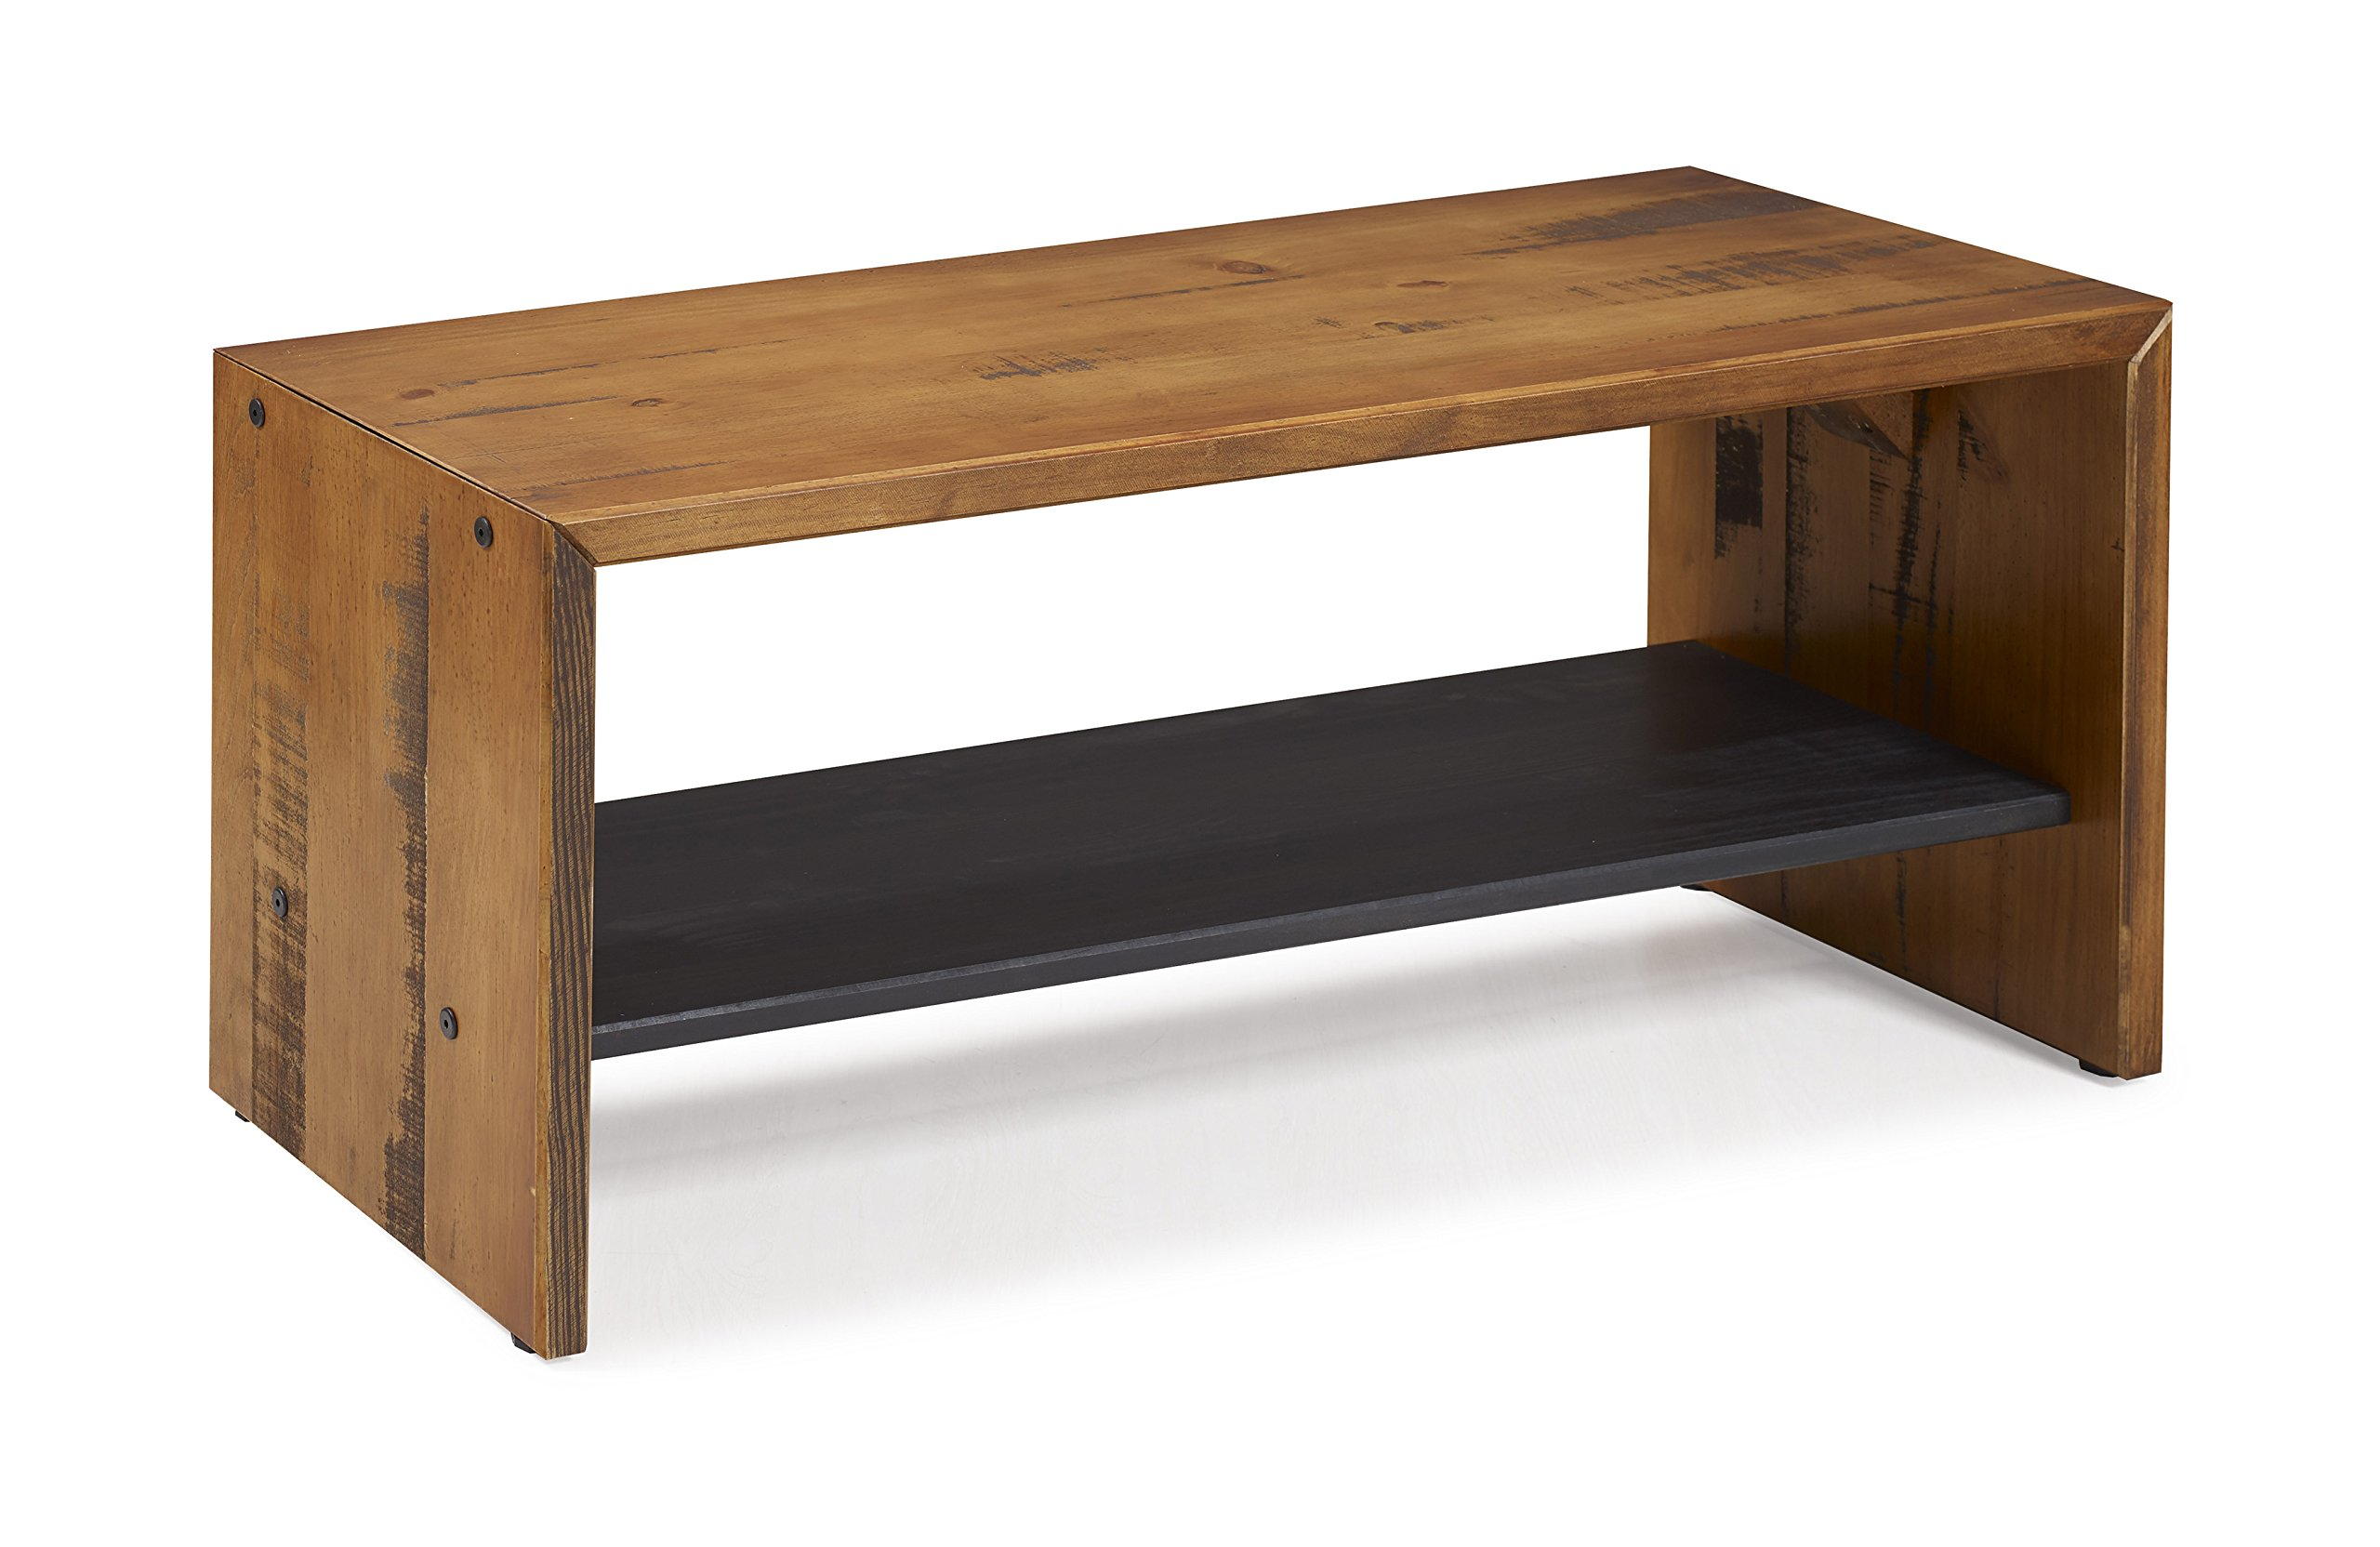 WE Furniture Reclaimed Wood Entry Bench in Amber - 42'' by WE Furniture (Image #2)